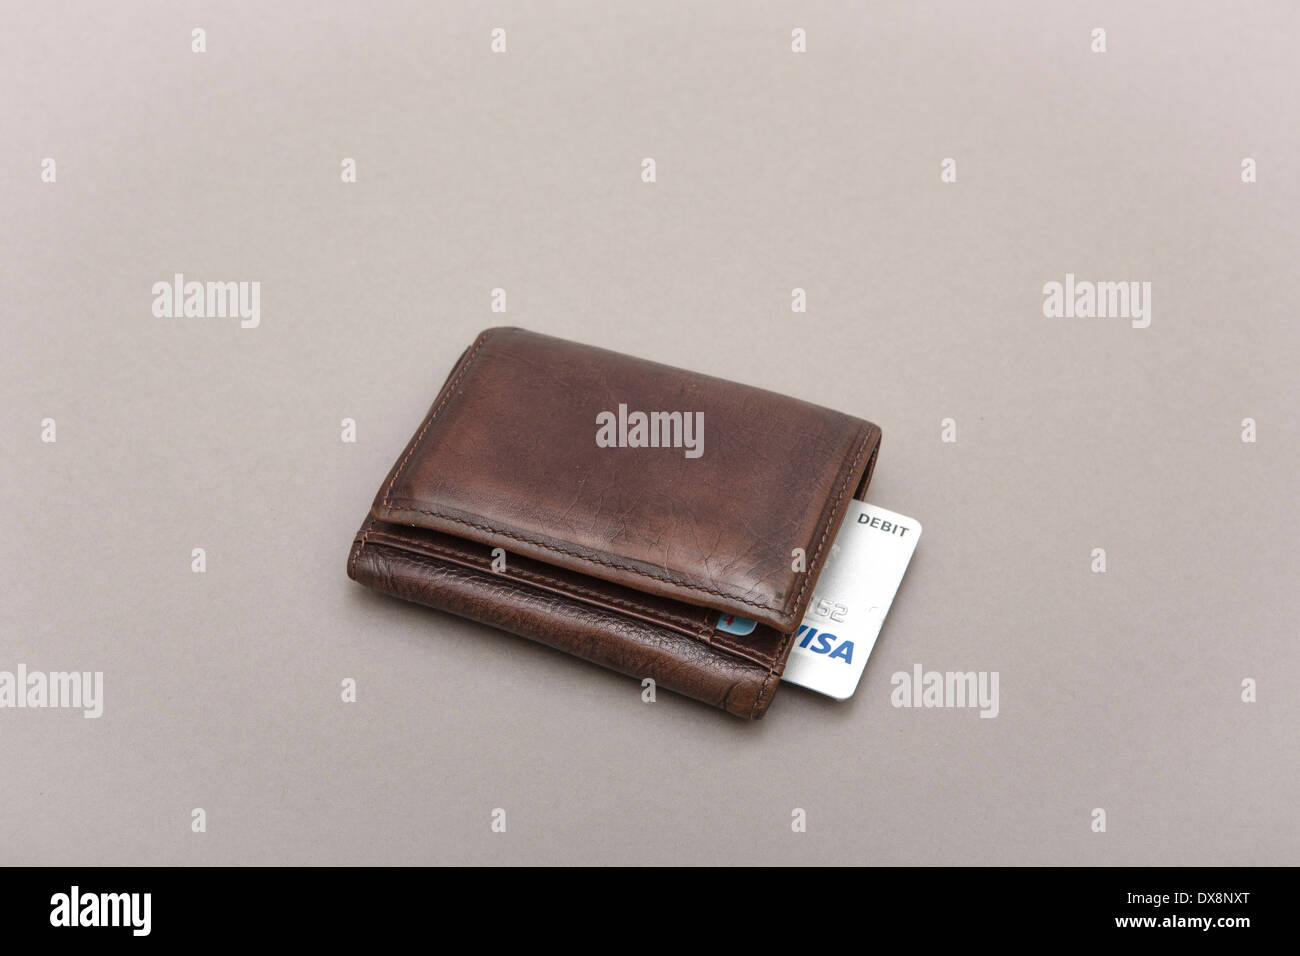 Brown leather wallet with visa card - Stock Image